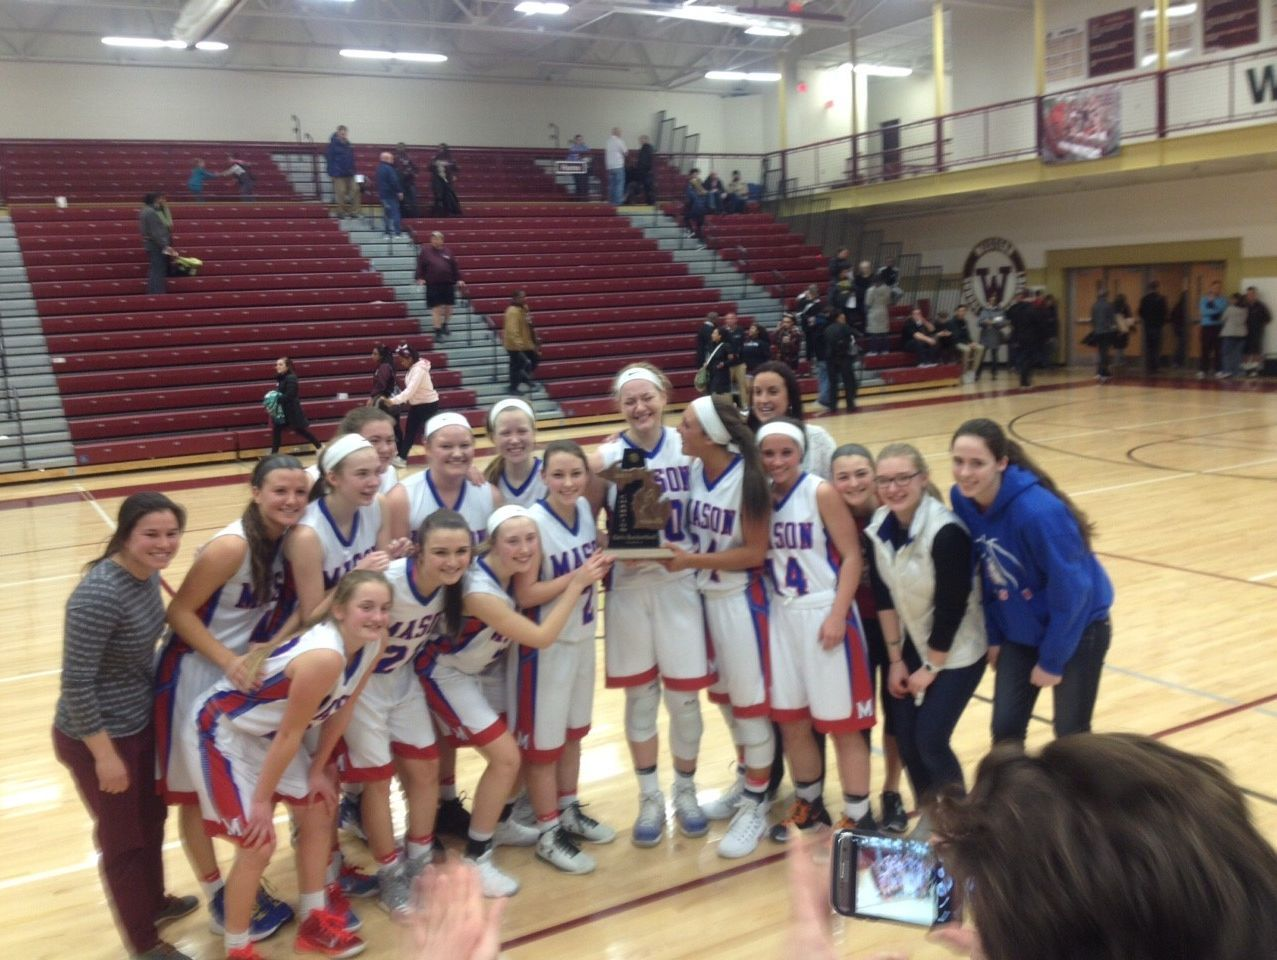 The Mason girls basketball team won the district title Friday night.